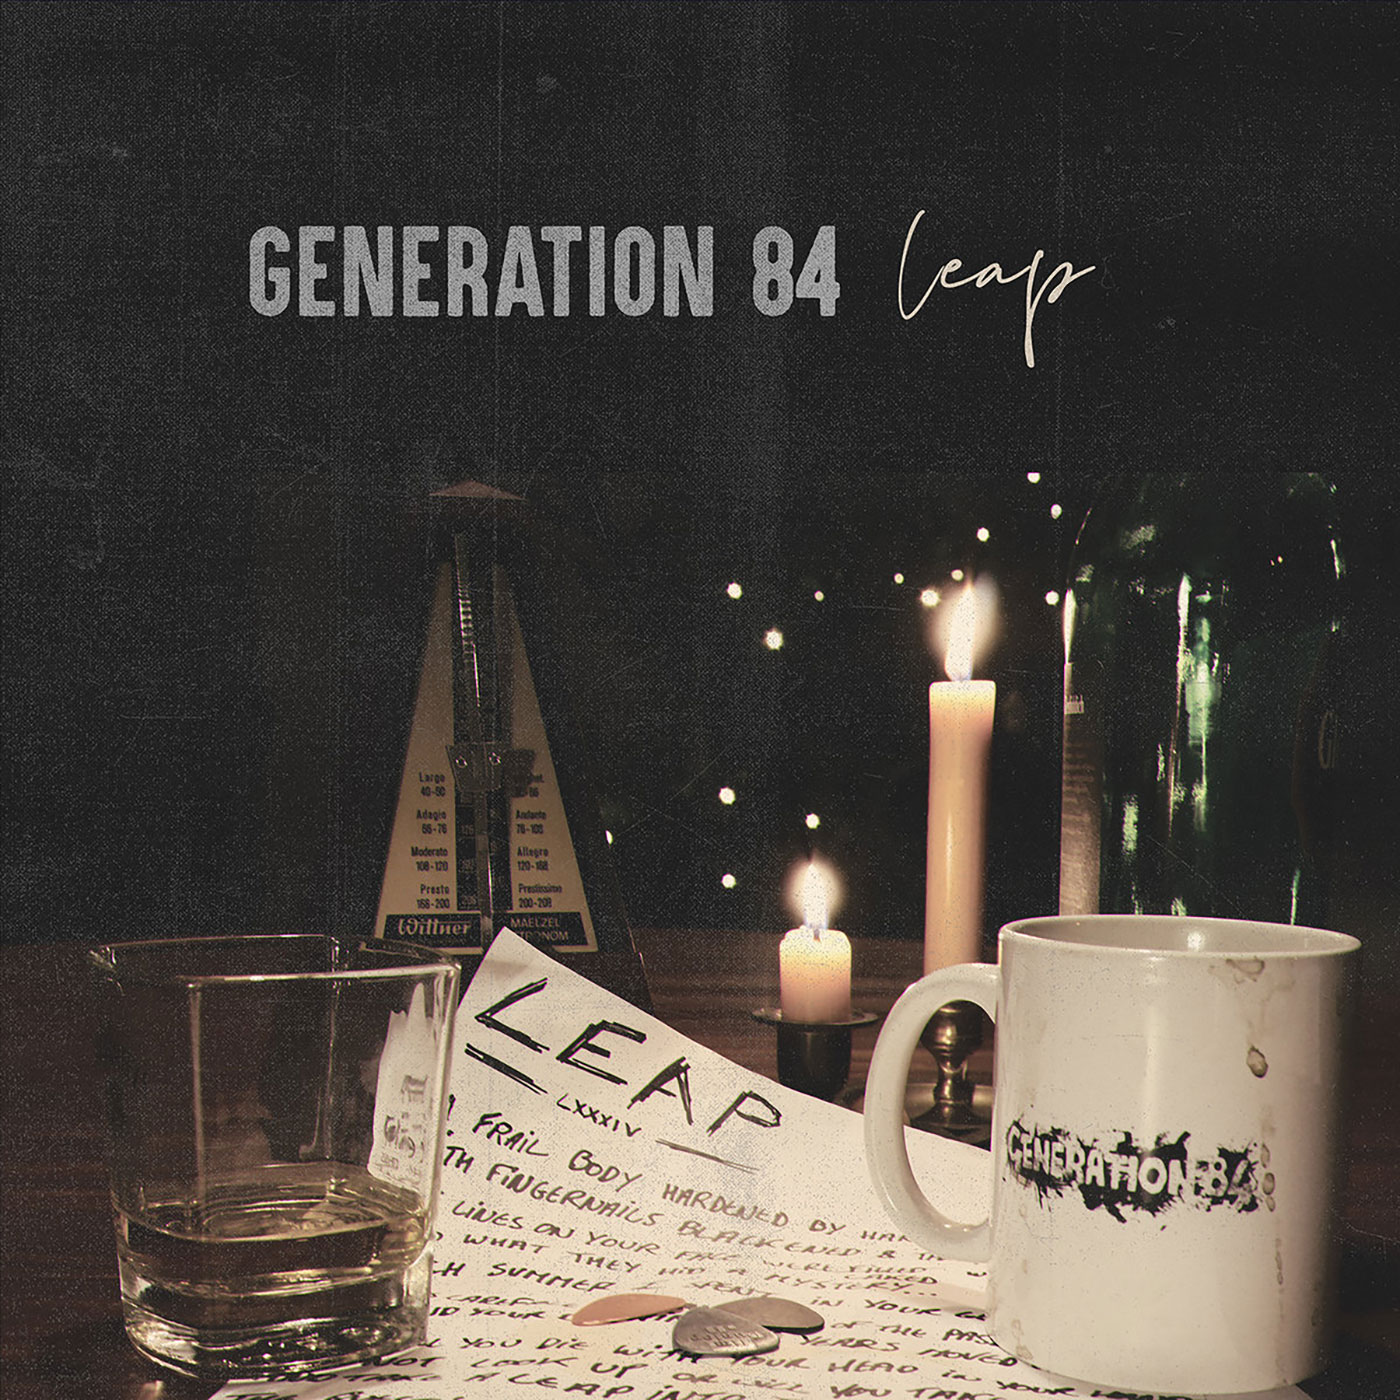 "Generation 84 – Leap 10"" (Lost Culture Records / Morning Wood Records)"